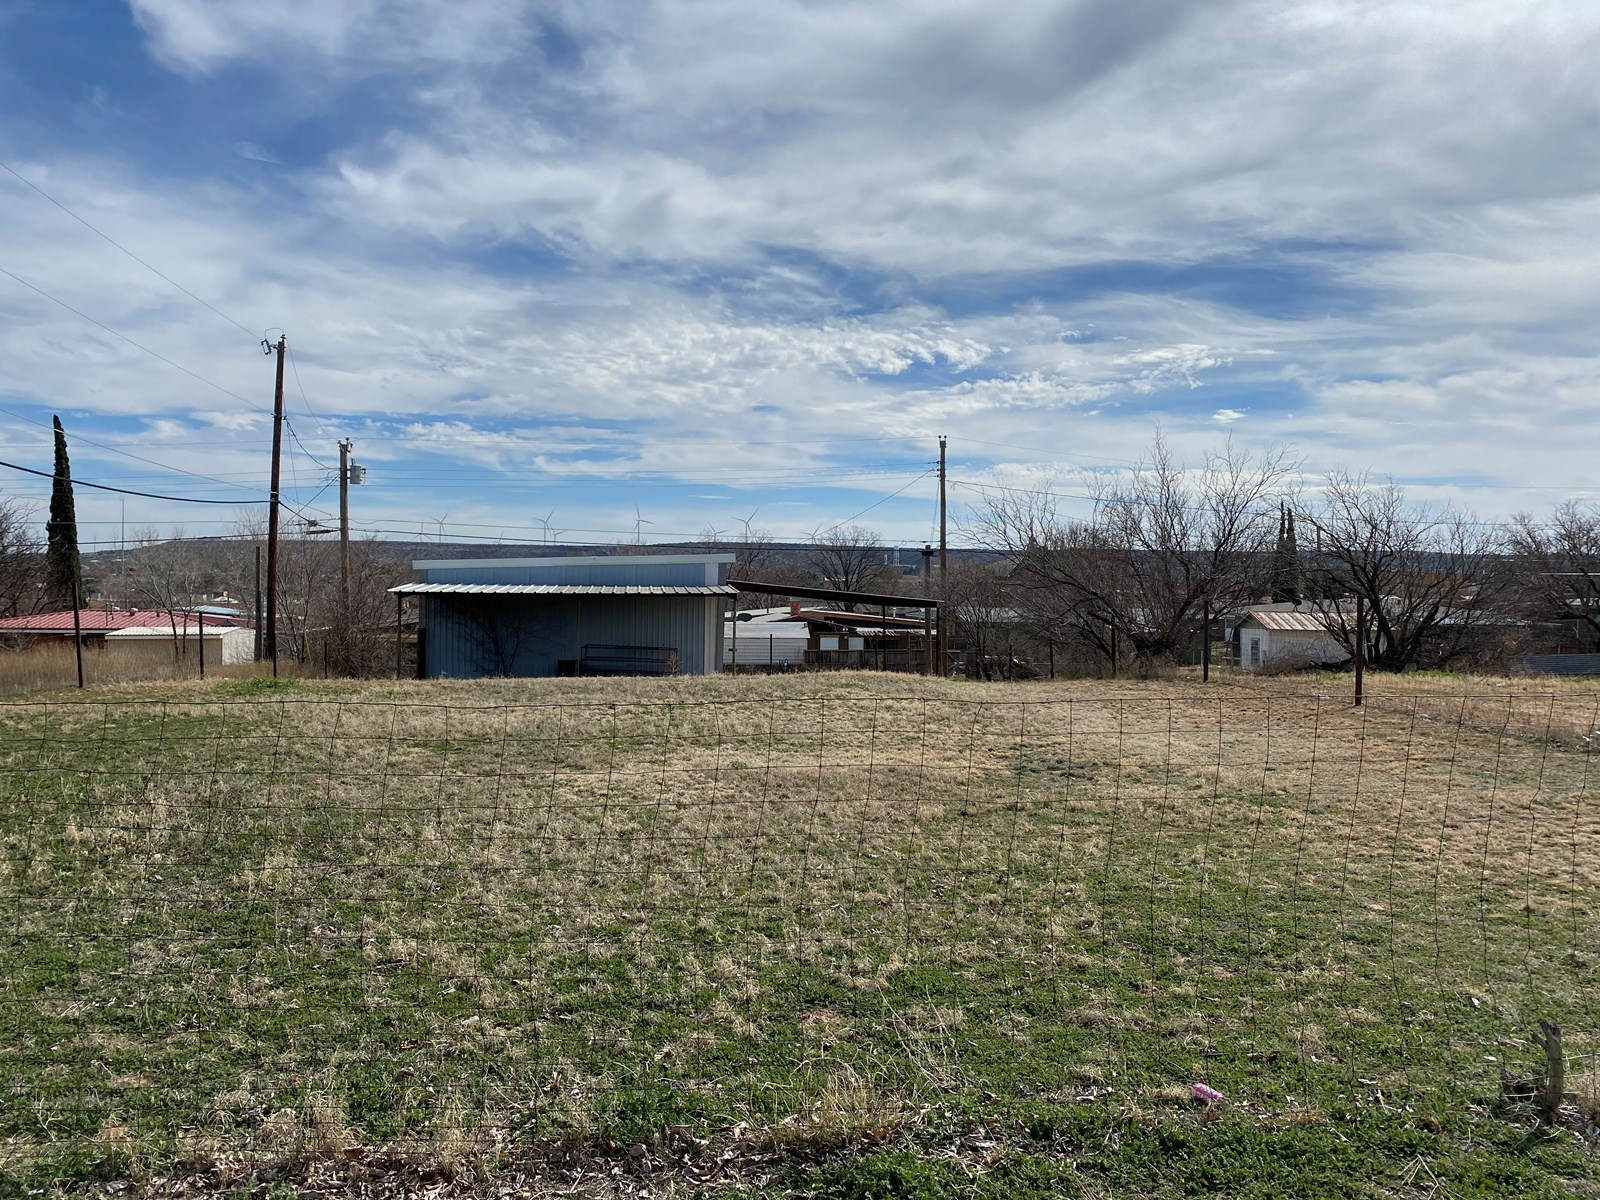 RESIDENTIAL LOT FOR SALE IN BIG SPRING